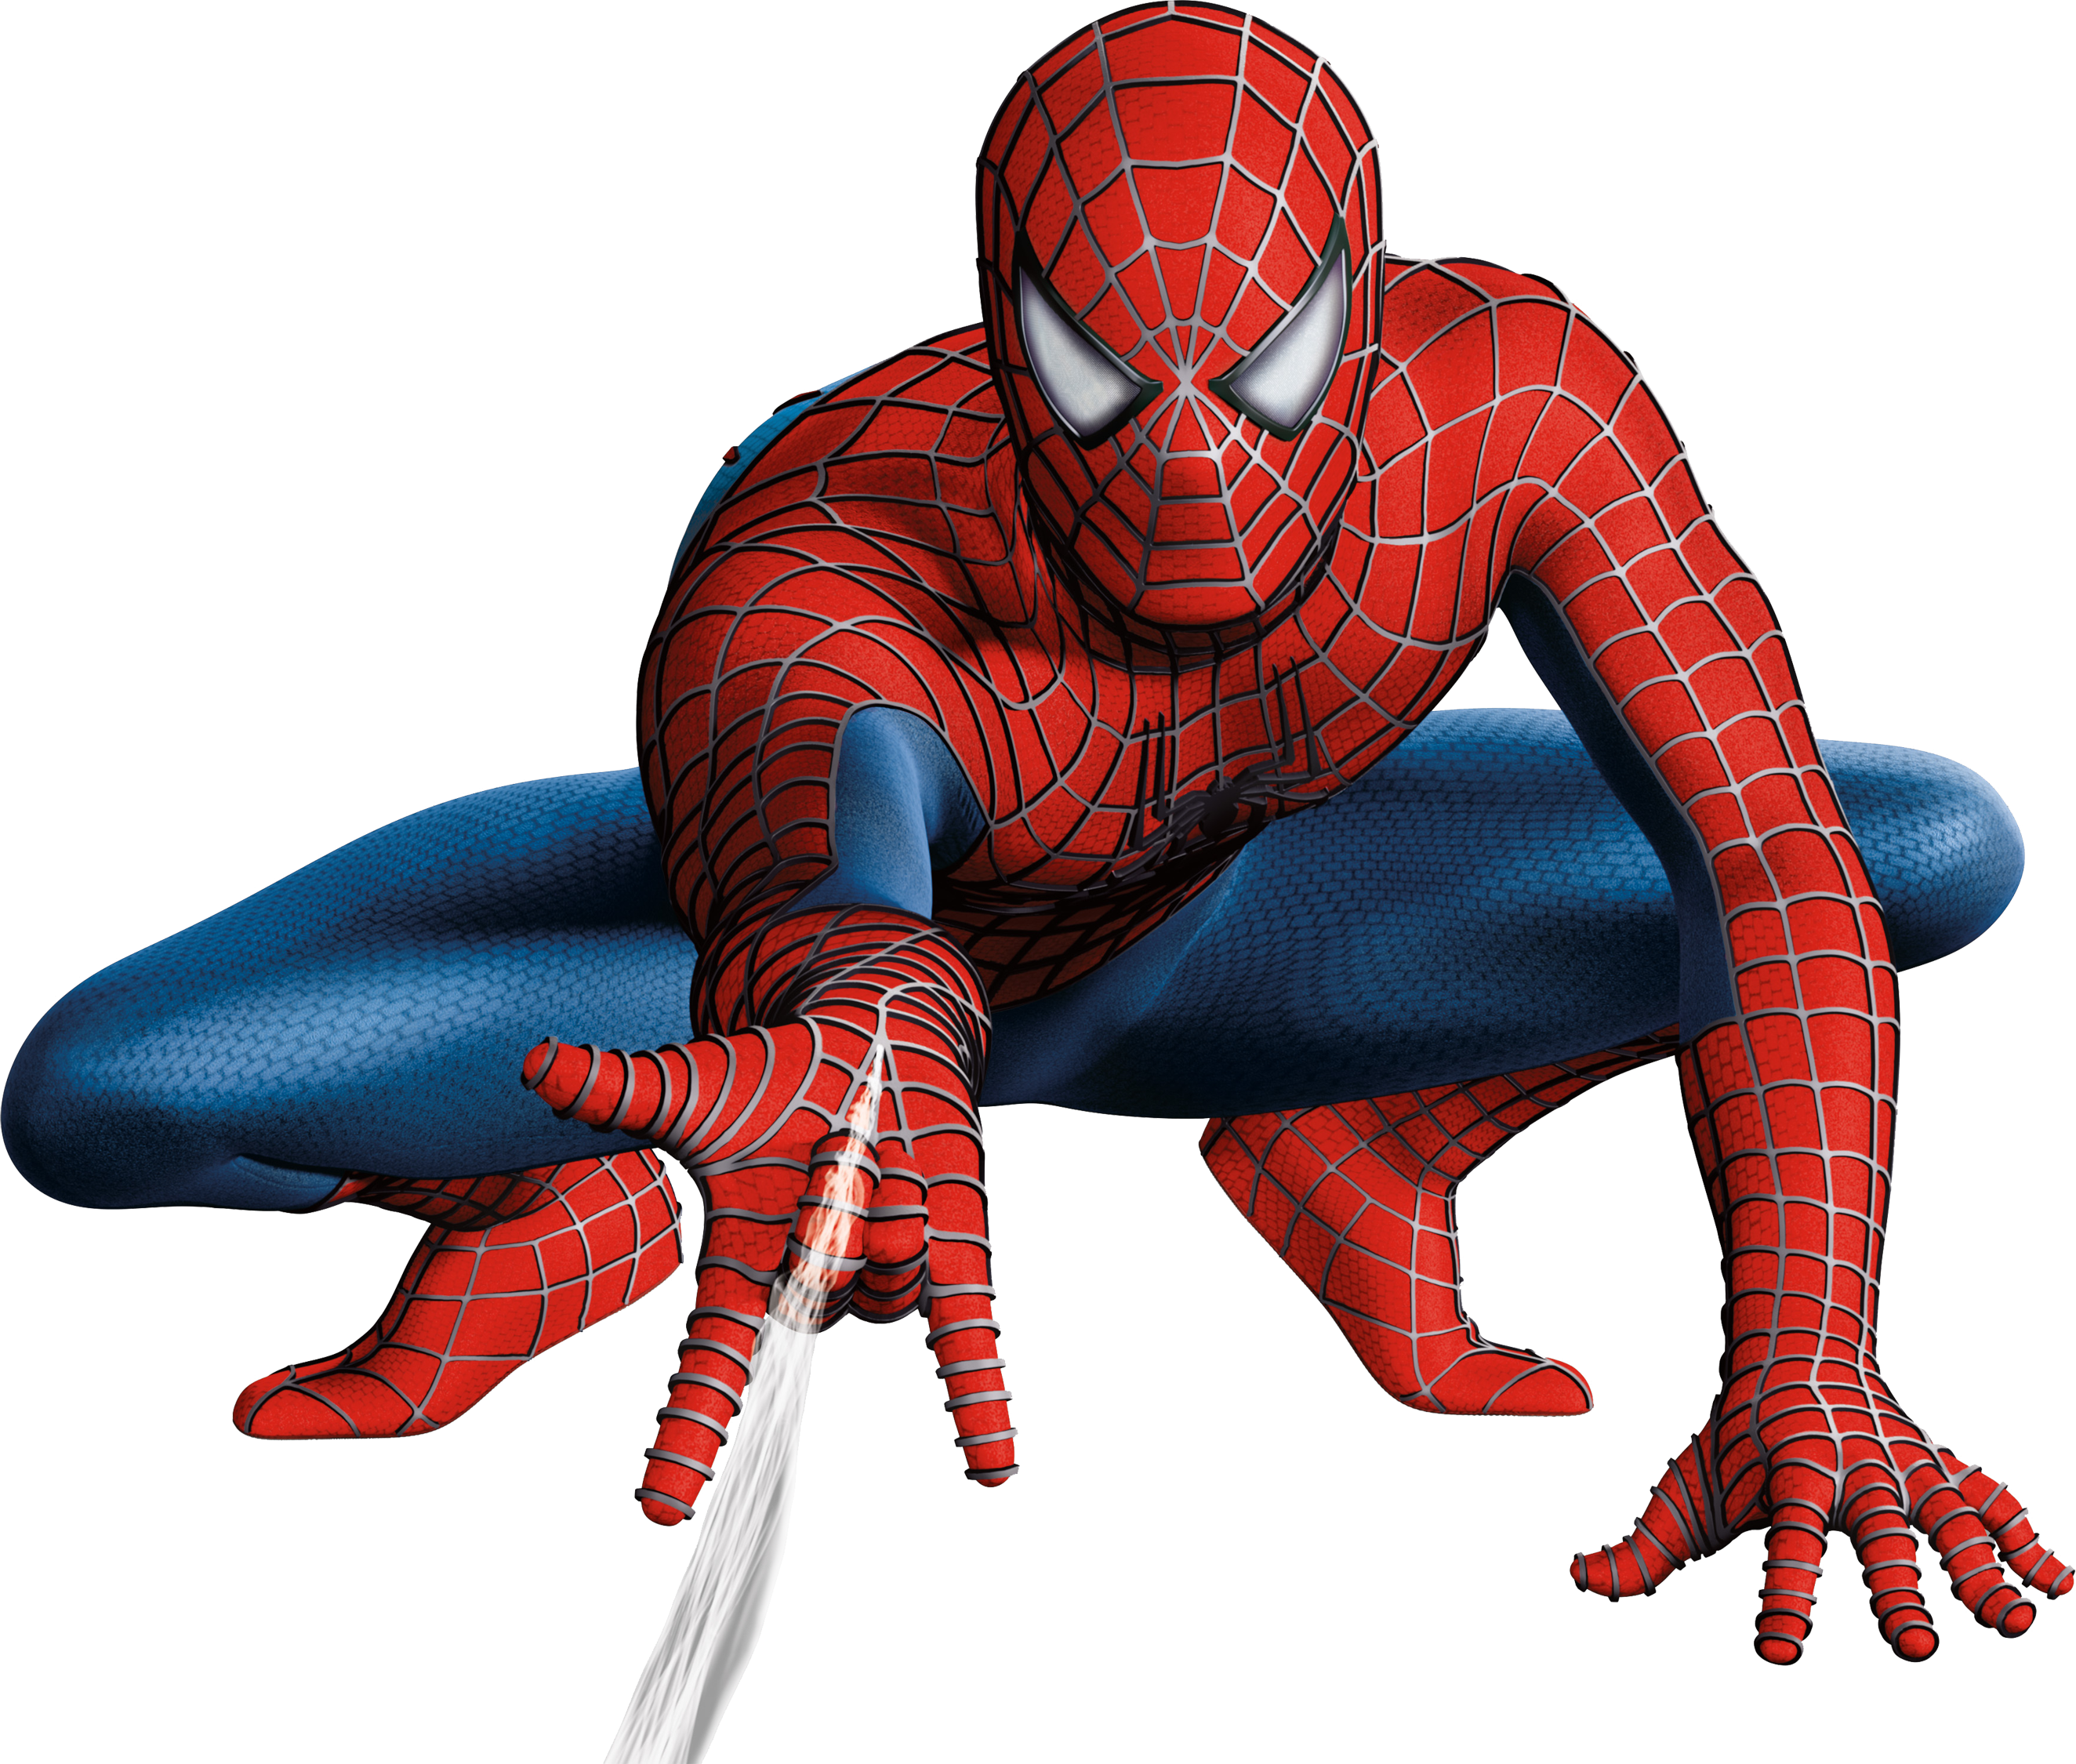 Free download of Spider-Man High Quality PNG